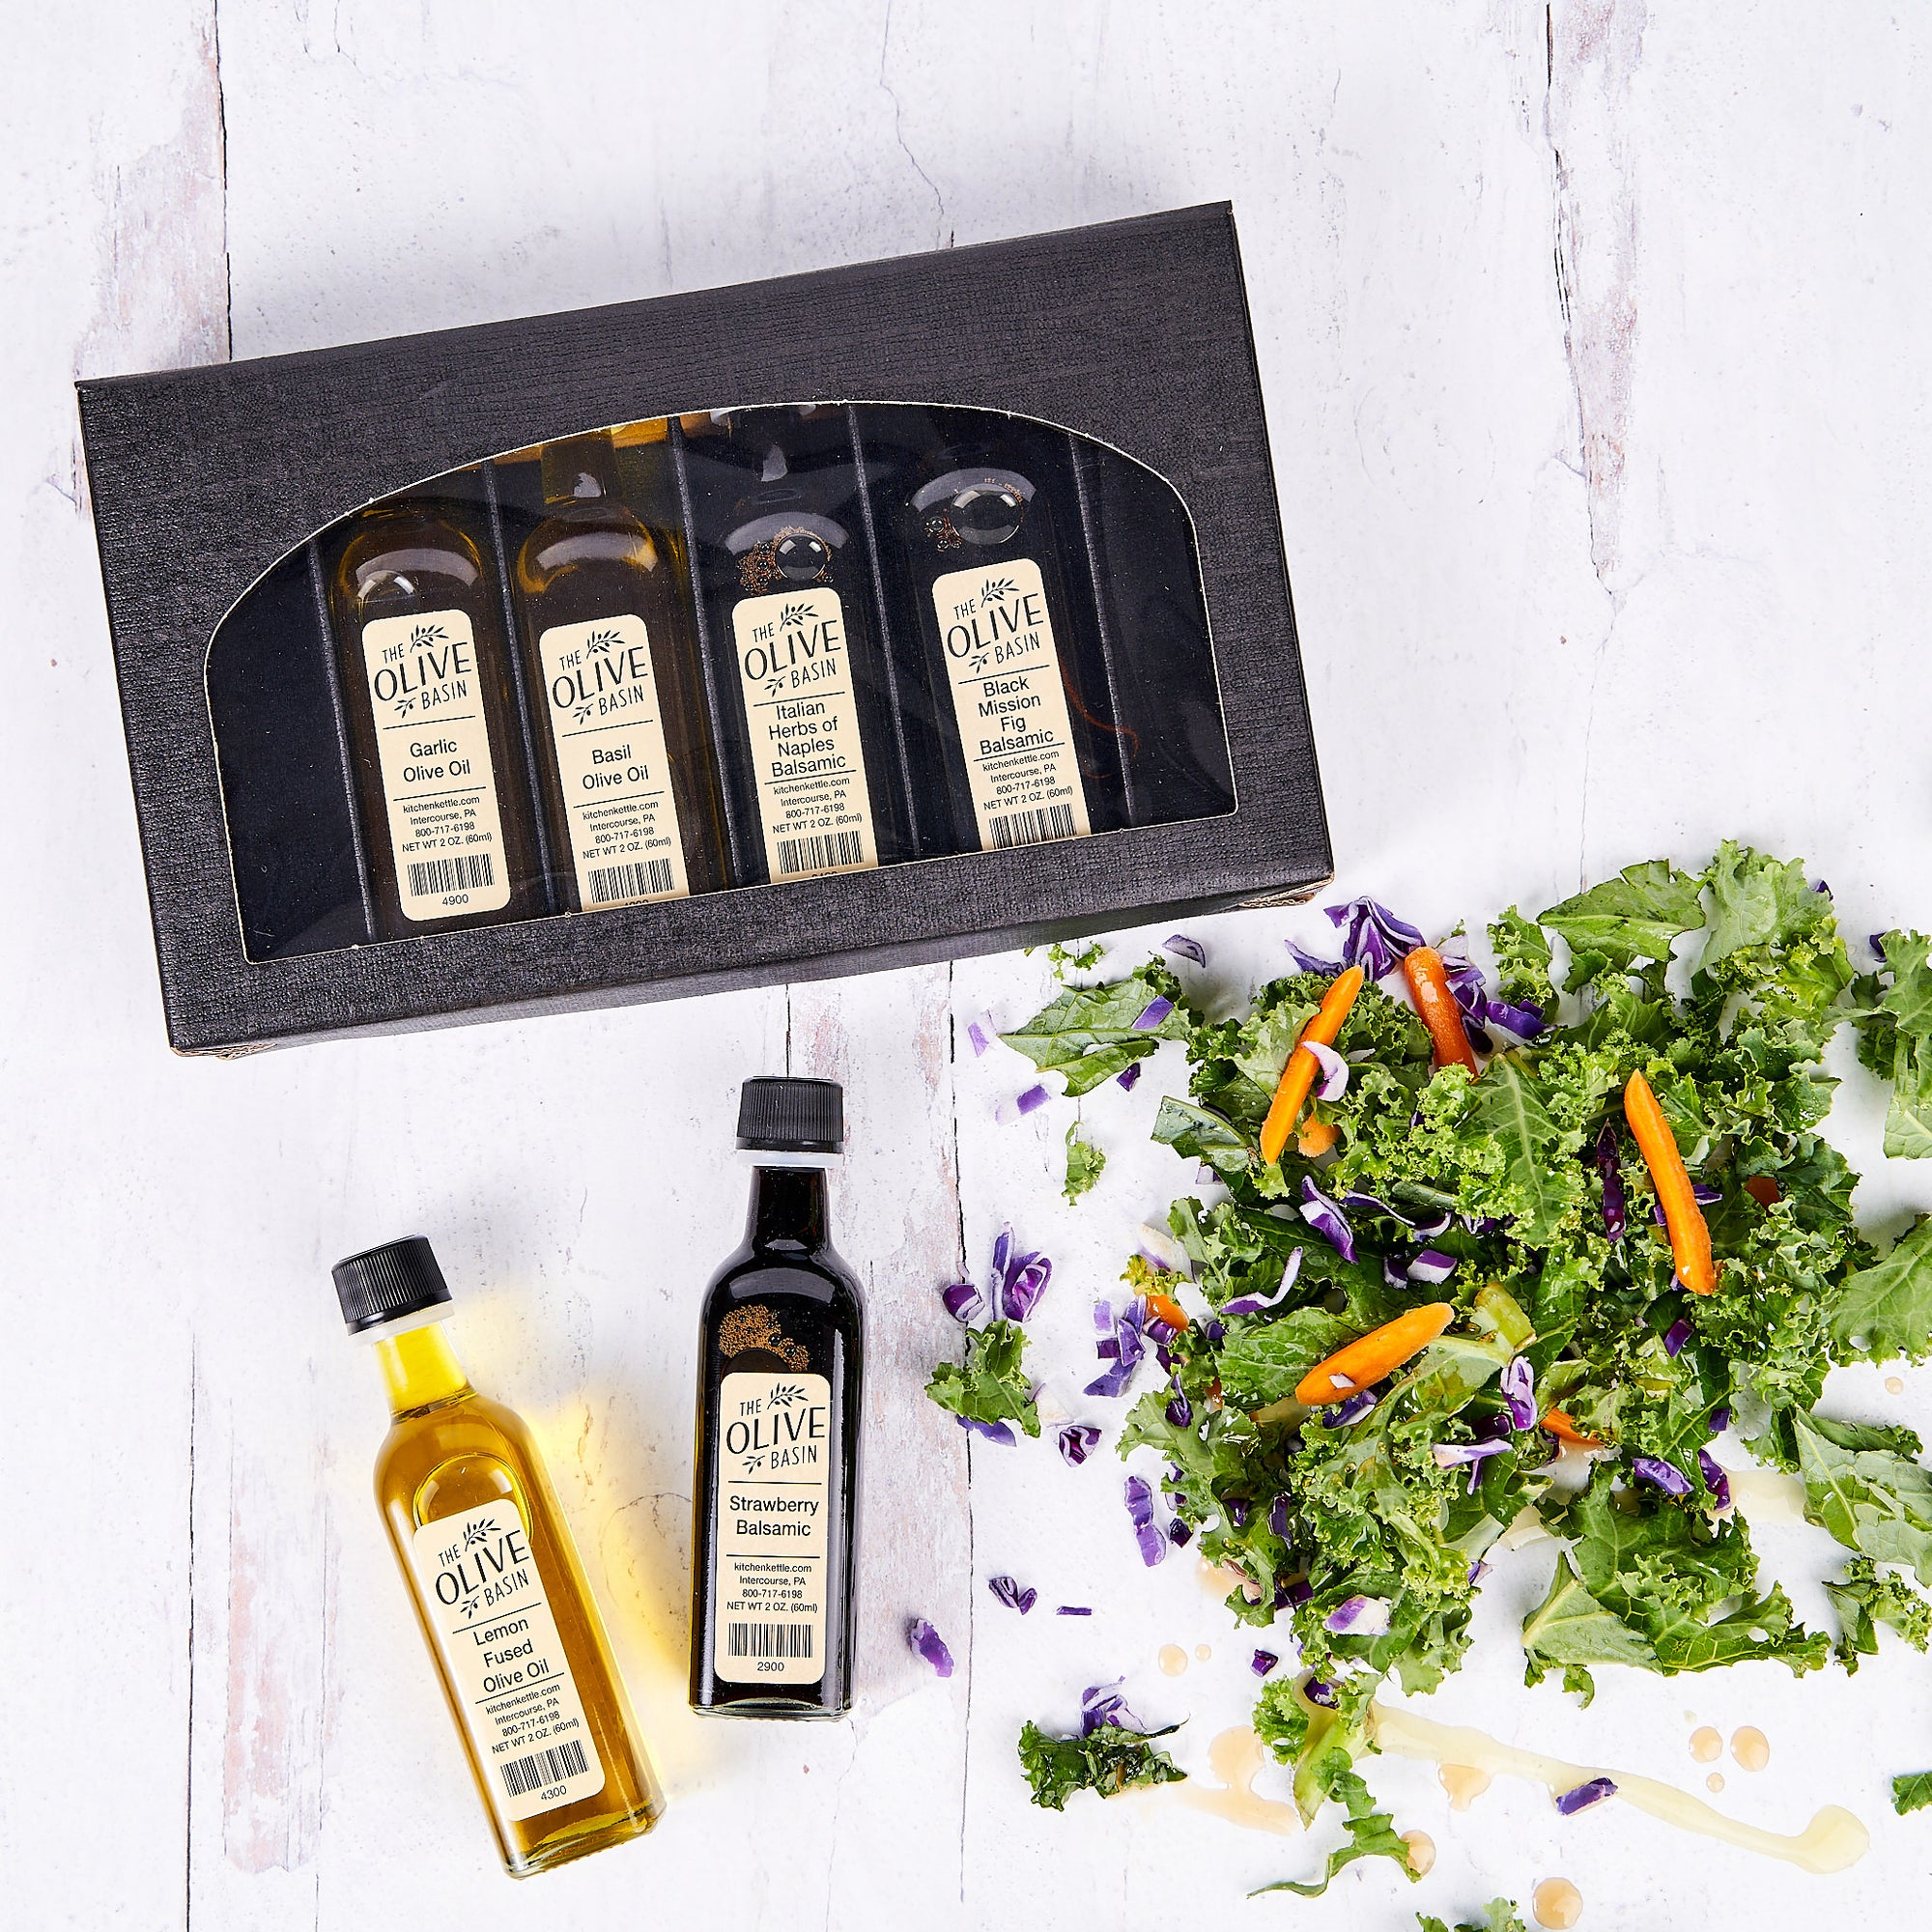 The Oil & Vinegar Salad & Vegetable Collection